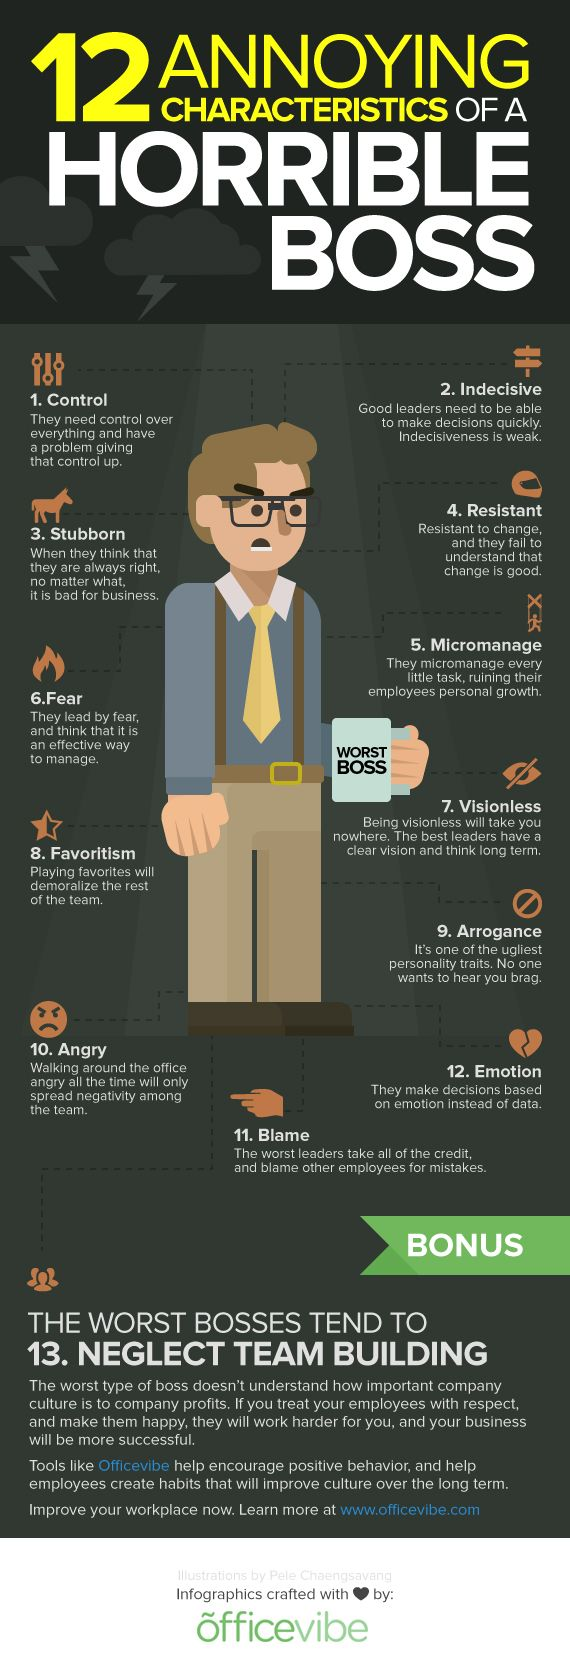 Bad Leadership Quotes 12 Annoying Characteristics Of A Horrible Boss Infographic